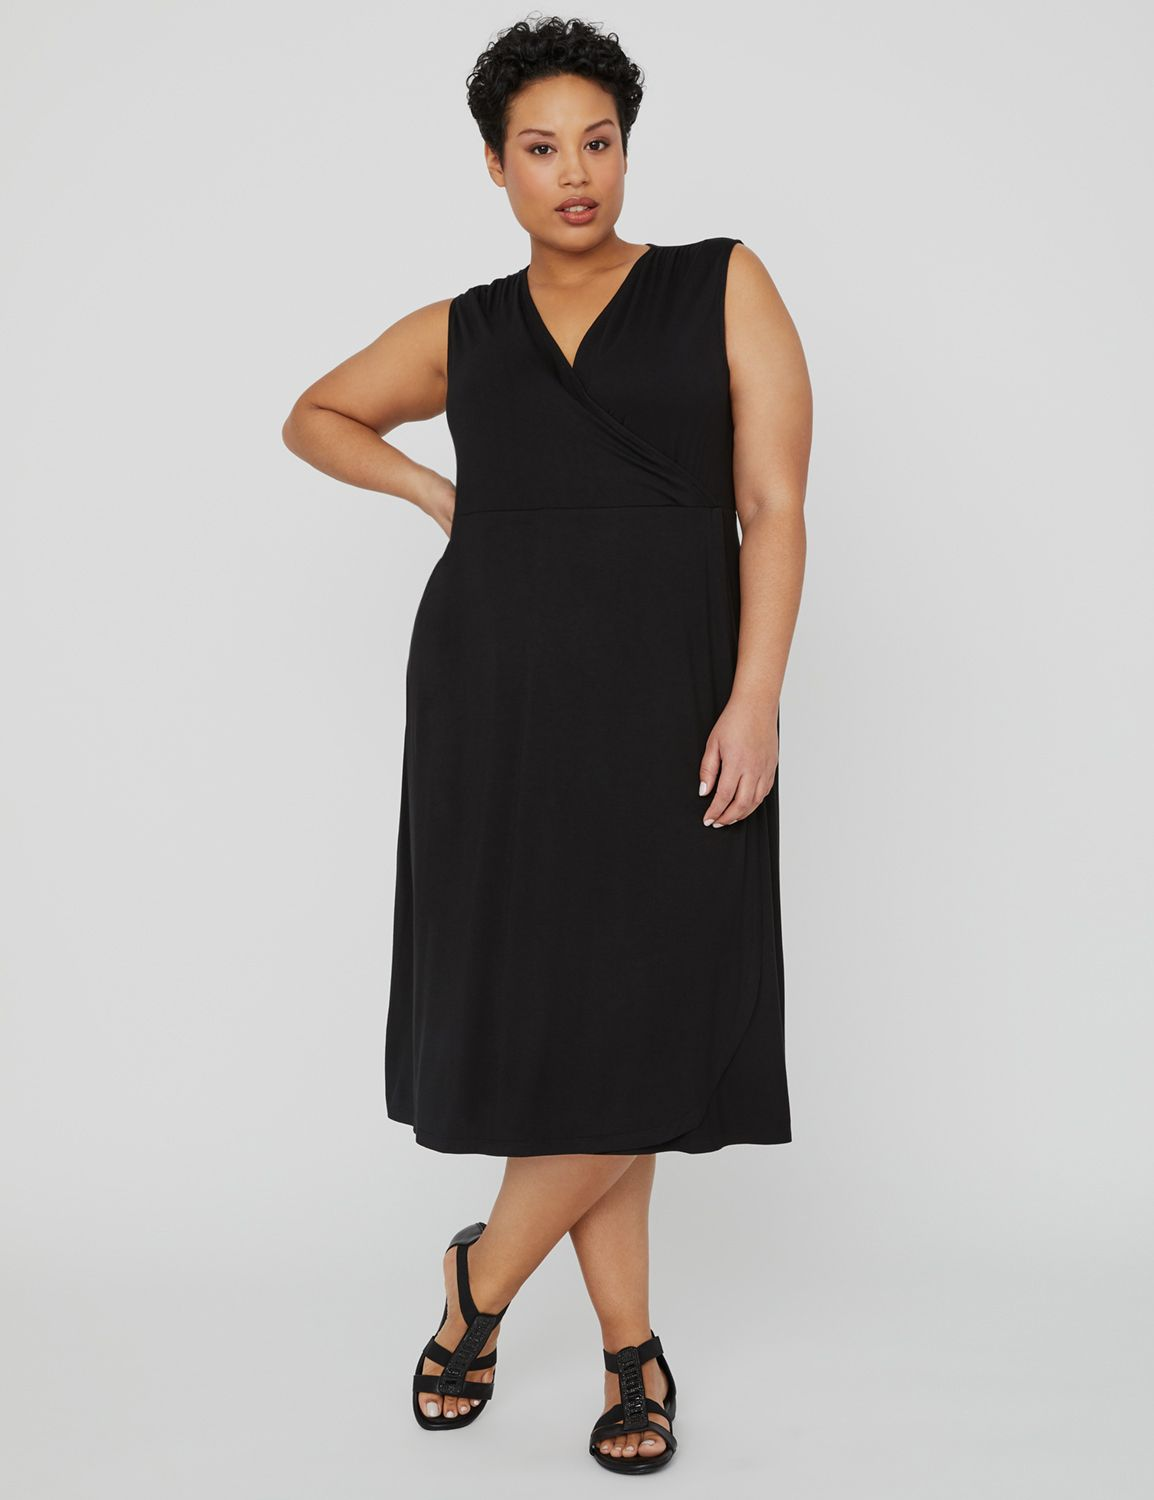 Riverview Wrap Dress 1088151 Vneck Front and Back Maxi E MP-300102354